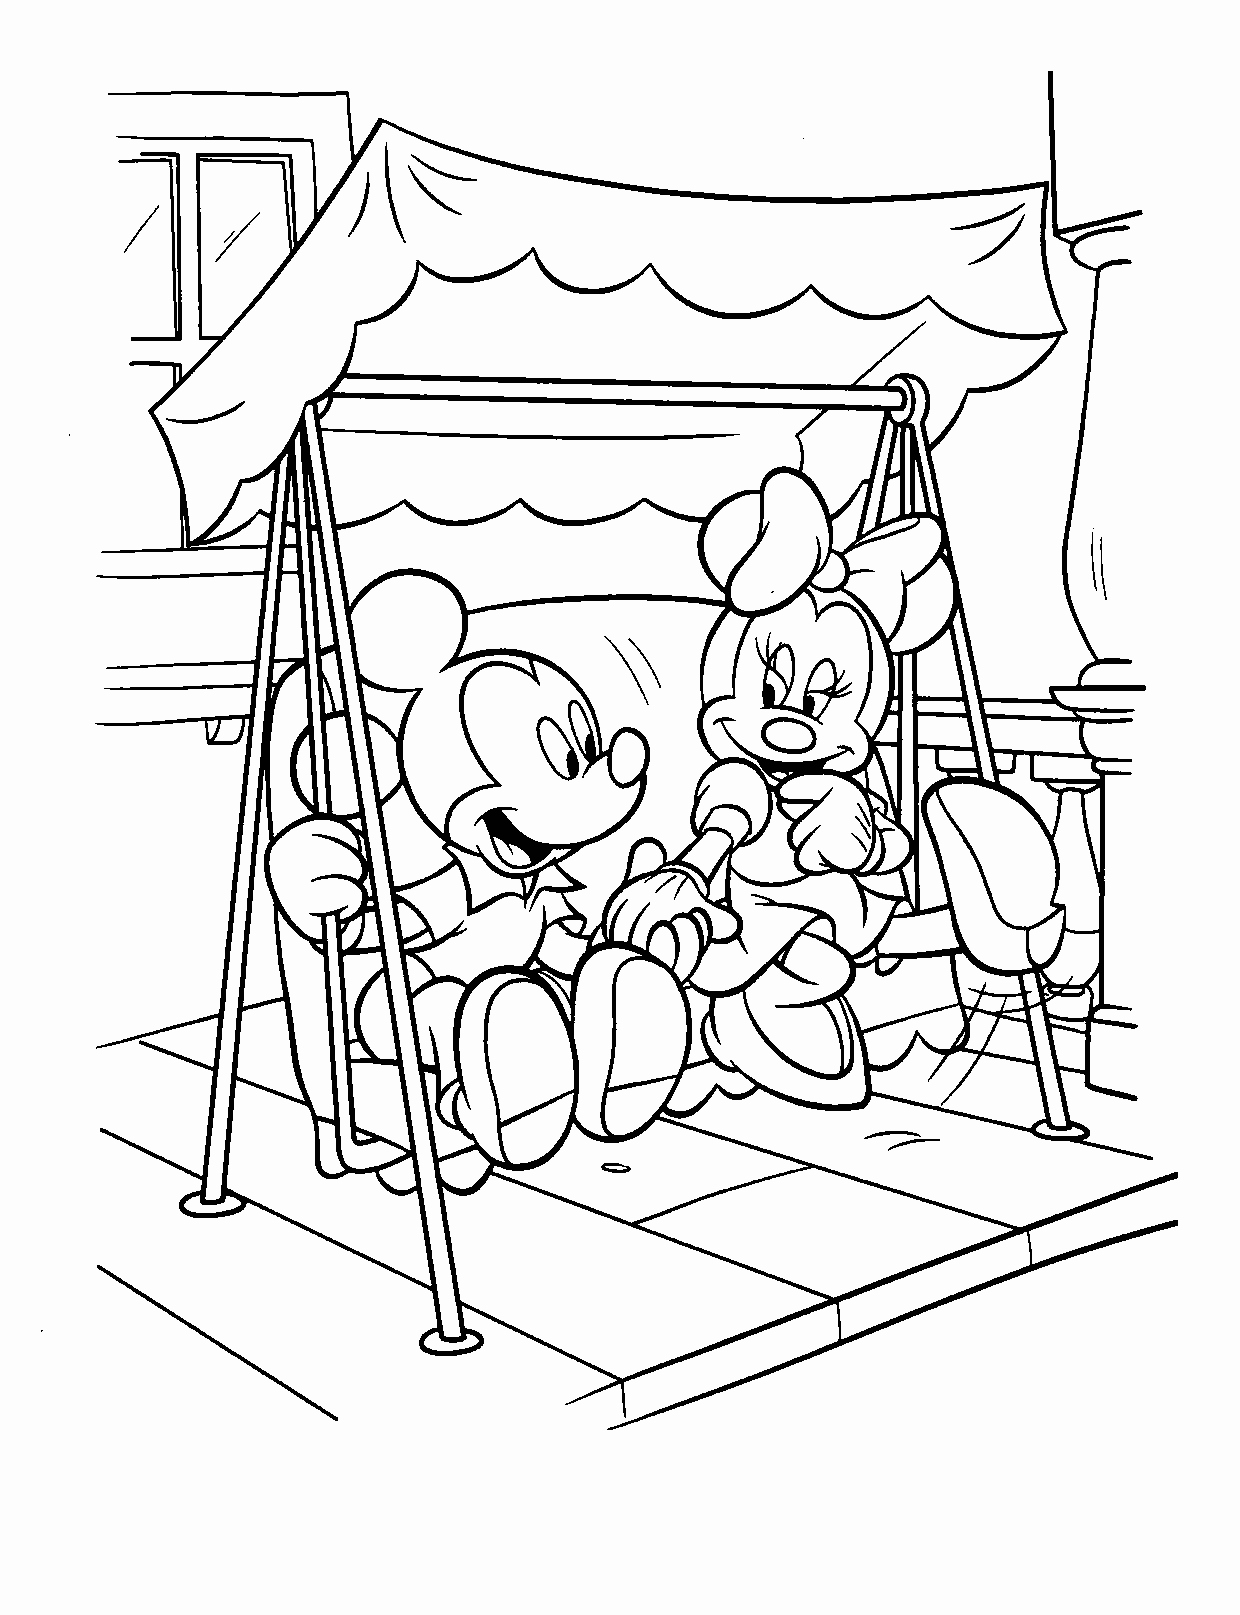 Mickey Mouse Colouring Sheets Awesome Free Printable Minnie Mouse Coloring Pages for Kids